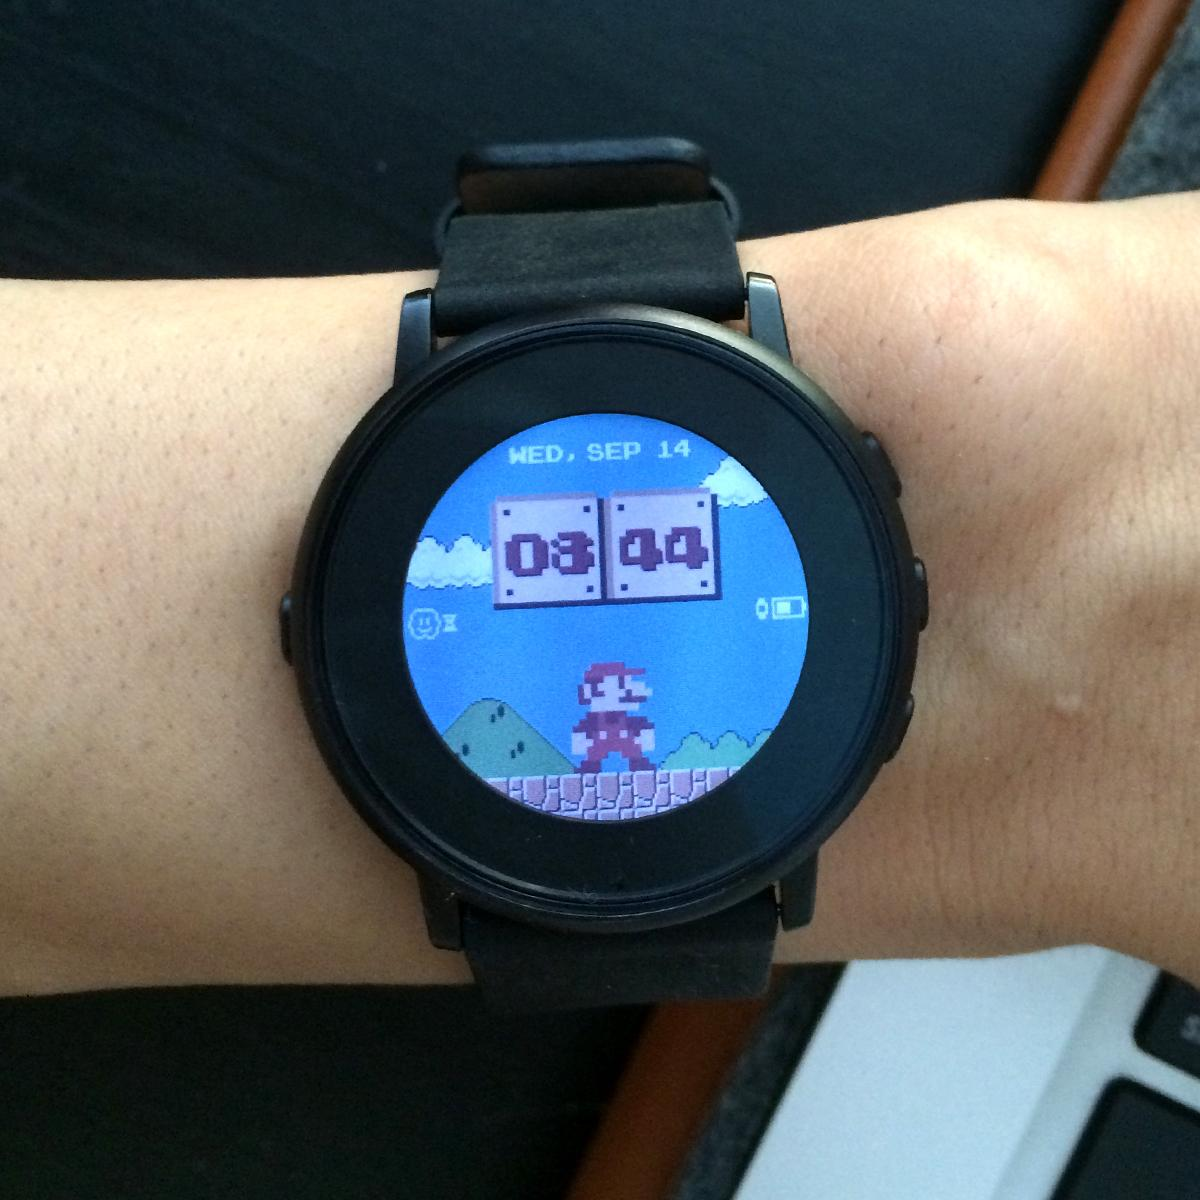 Mario Time Pebble watch faces